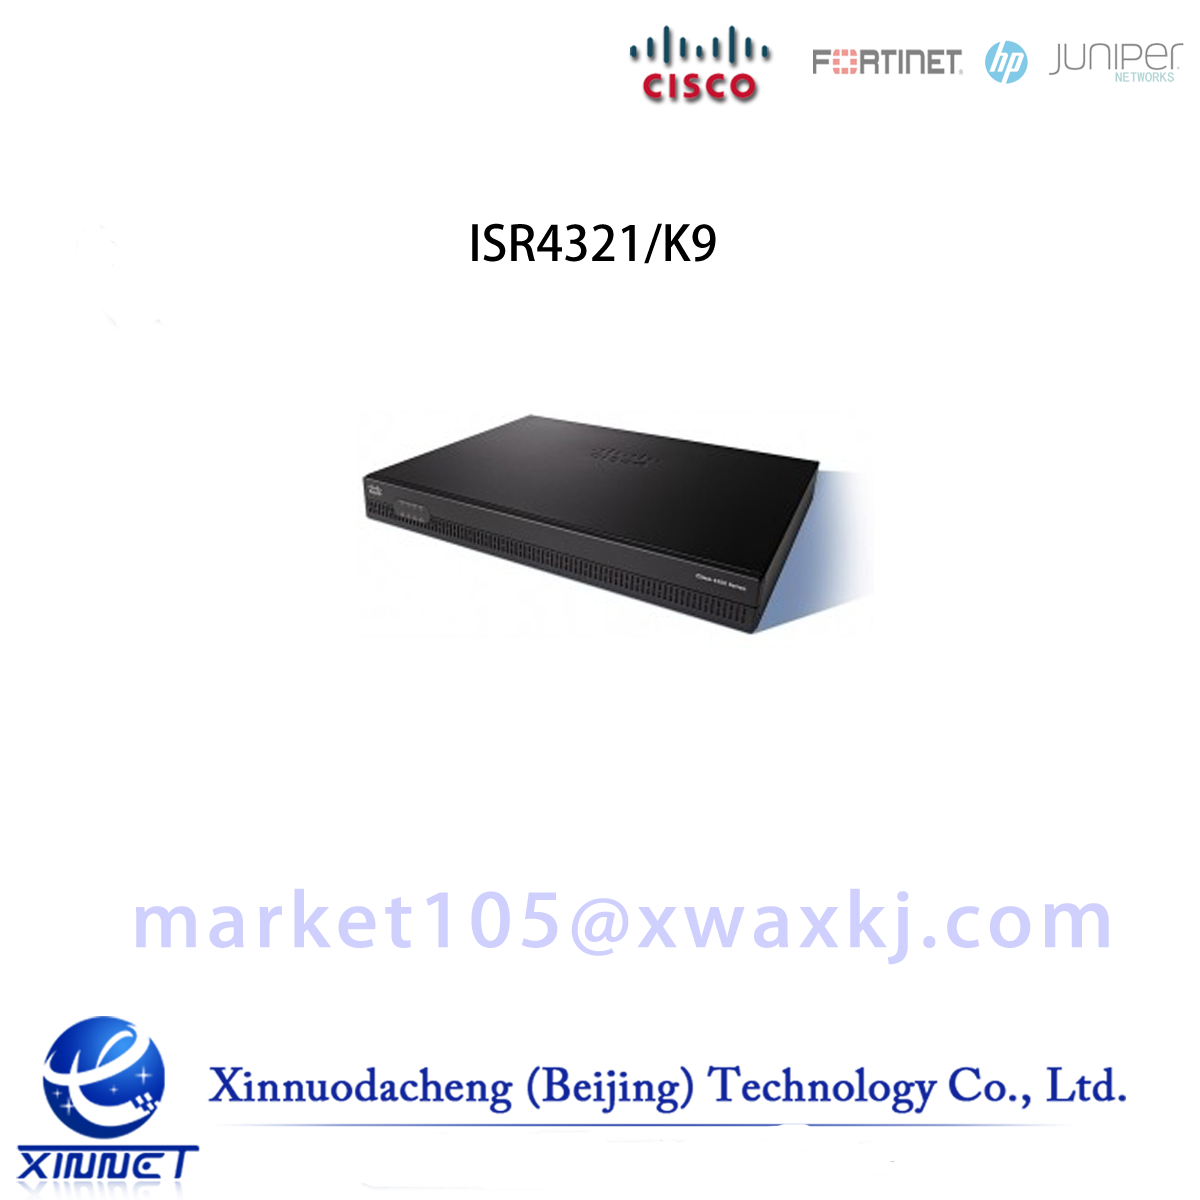 ISR4321/K9 Cisco ISR 4321 (2GE,2NIM,4G FLASH,4G DRAM,IPB)